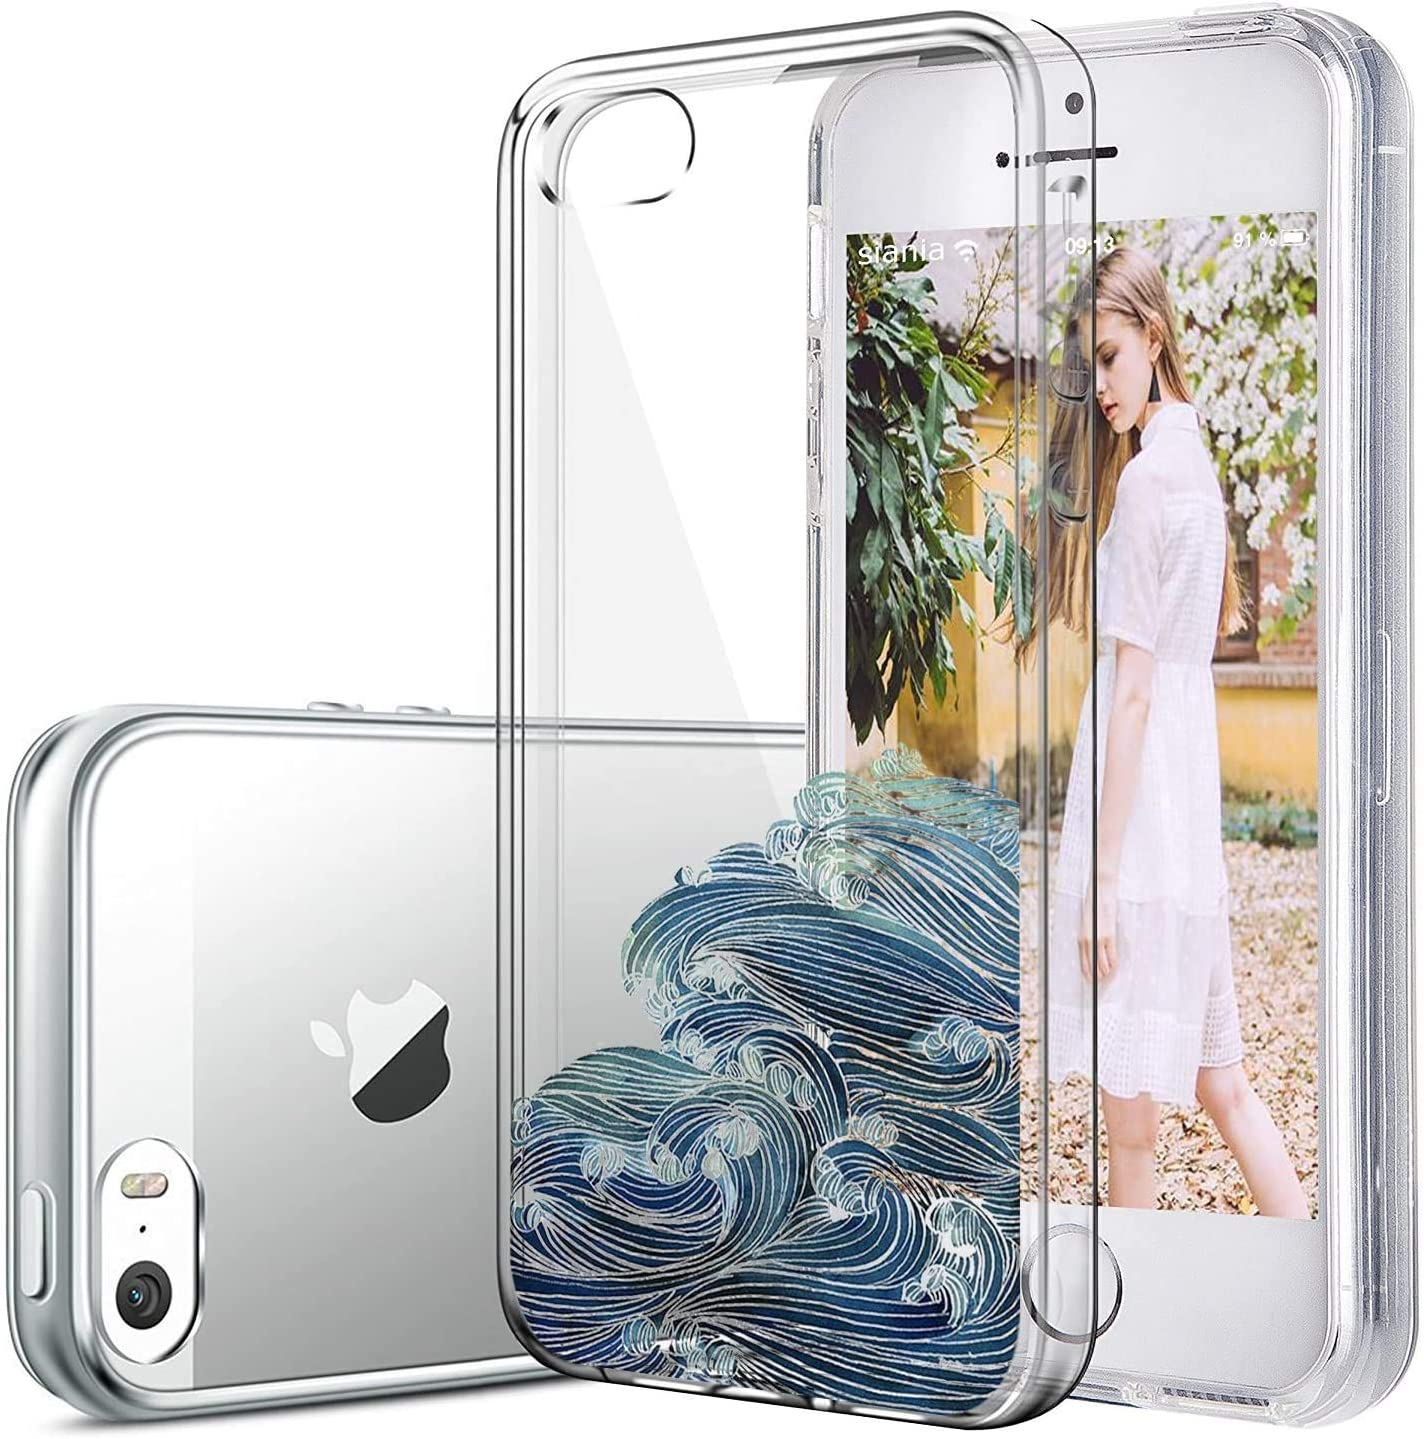 iPhone 5/5s/SE Case TPU Silicone Rubber Cute Anti-Scratch Slim Ultra Protective Clear Shock-Absorption Bumper Soft Amusing Design for Apple i Phone5 Cover (Color6, iPhone 5/5s/SE)